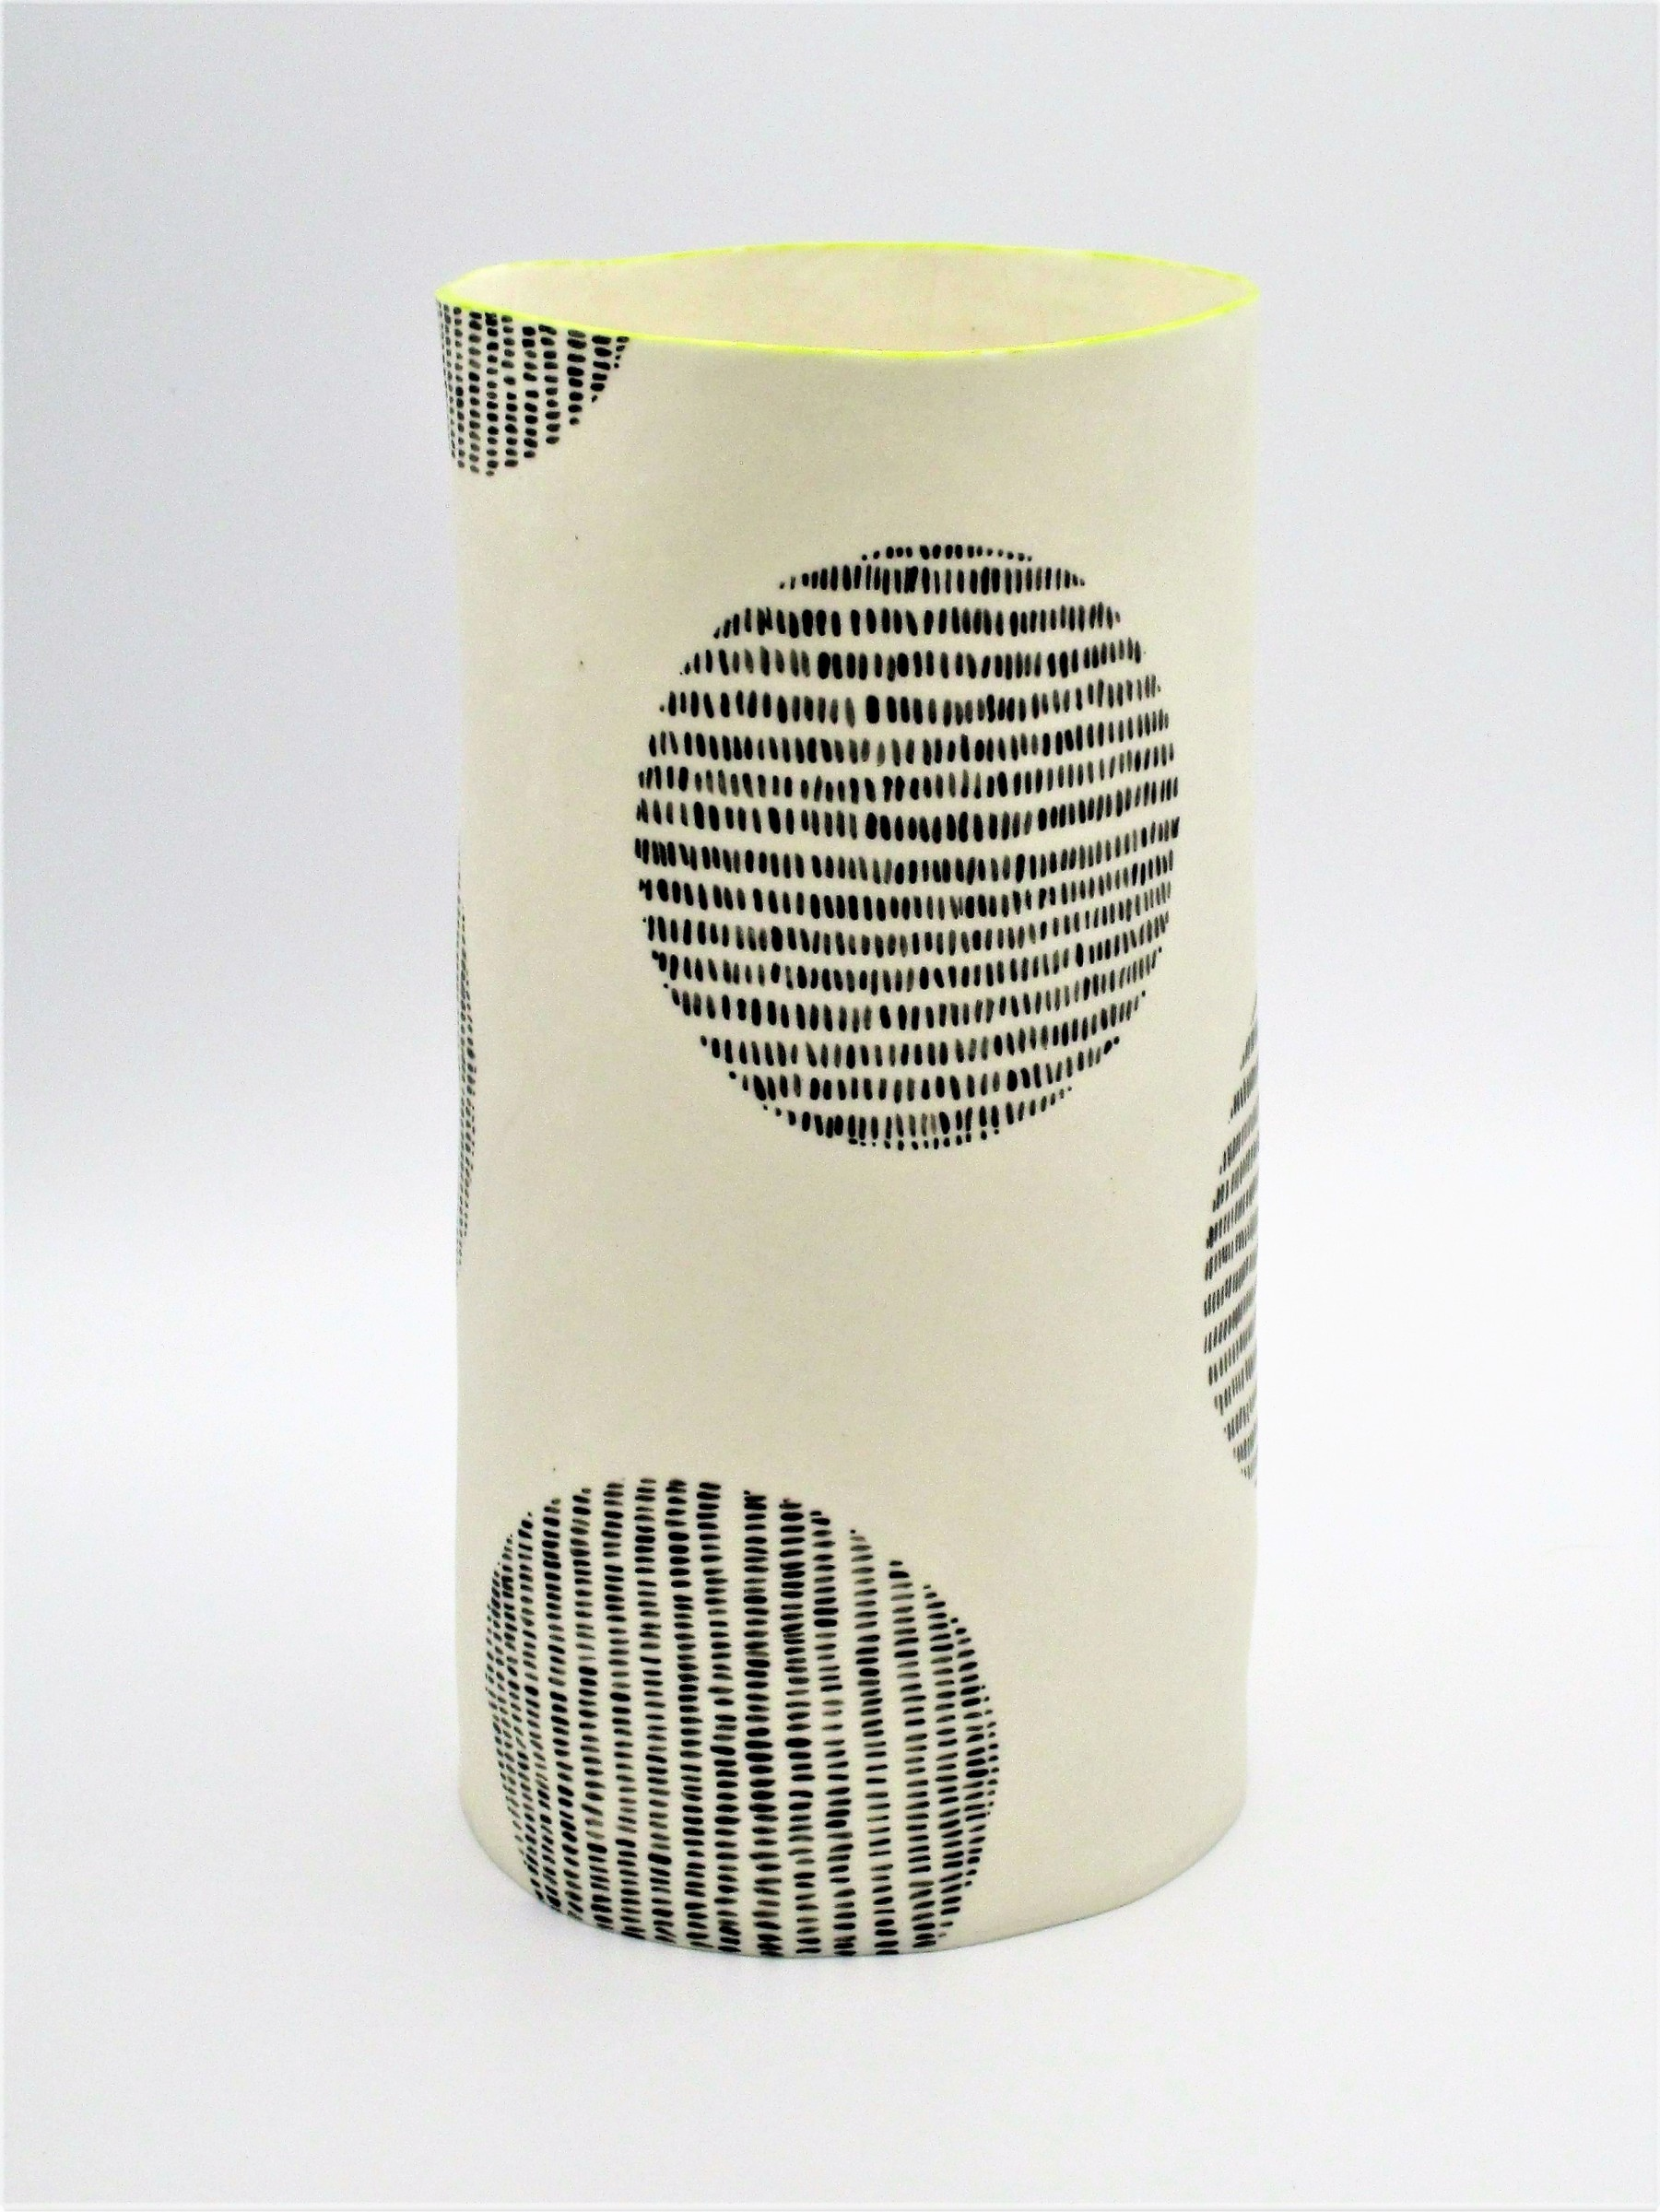 """<span class=""""link fancybox-details-link""""><a href=""""/artists/226-jane-muende/works/7161-jane-muende-translucent-white-cylinder-with-black-painted-stitch-lines-2020/"""">View Detail Page</a></span><div class=""""artist""""><strong>Jane Muende</strong></div> <div class=""""title""""><em>Translucent white cylinder with black painted 'stitch lines' within circle, lime green rim</em>, 2020</div> <div class=""""medium"""">Hand built in paper porcelain</div> <div class=""""dimensions"""">22 cm x 11 cm </div><div class=""""price"""">£245.00</div><div class=""""copyright_line"""">Own Art: £24.50 x 10 months 0% APR</div>"""